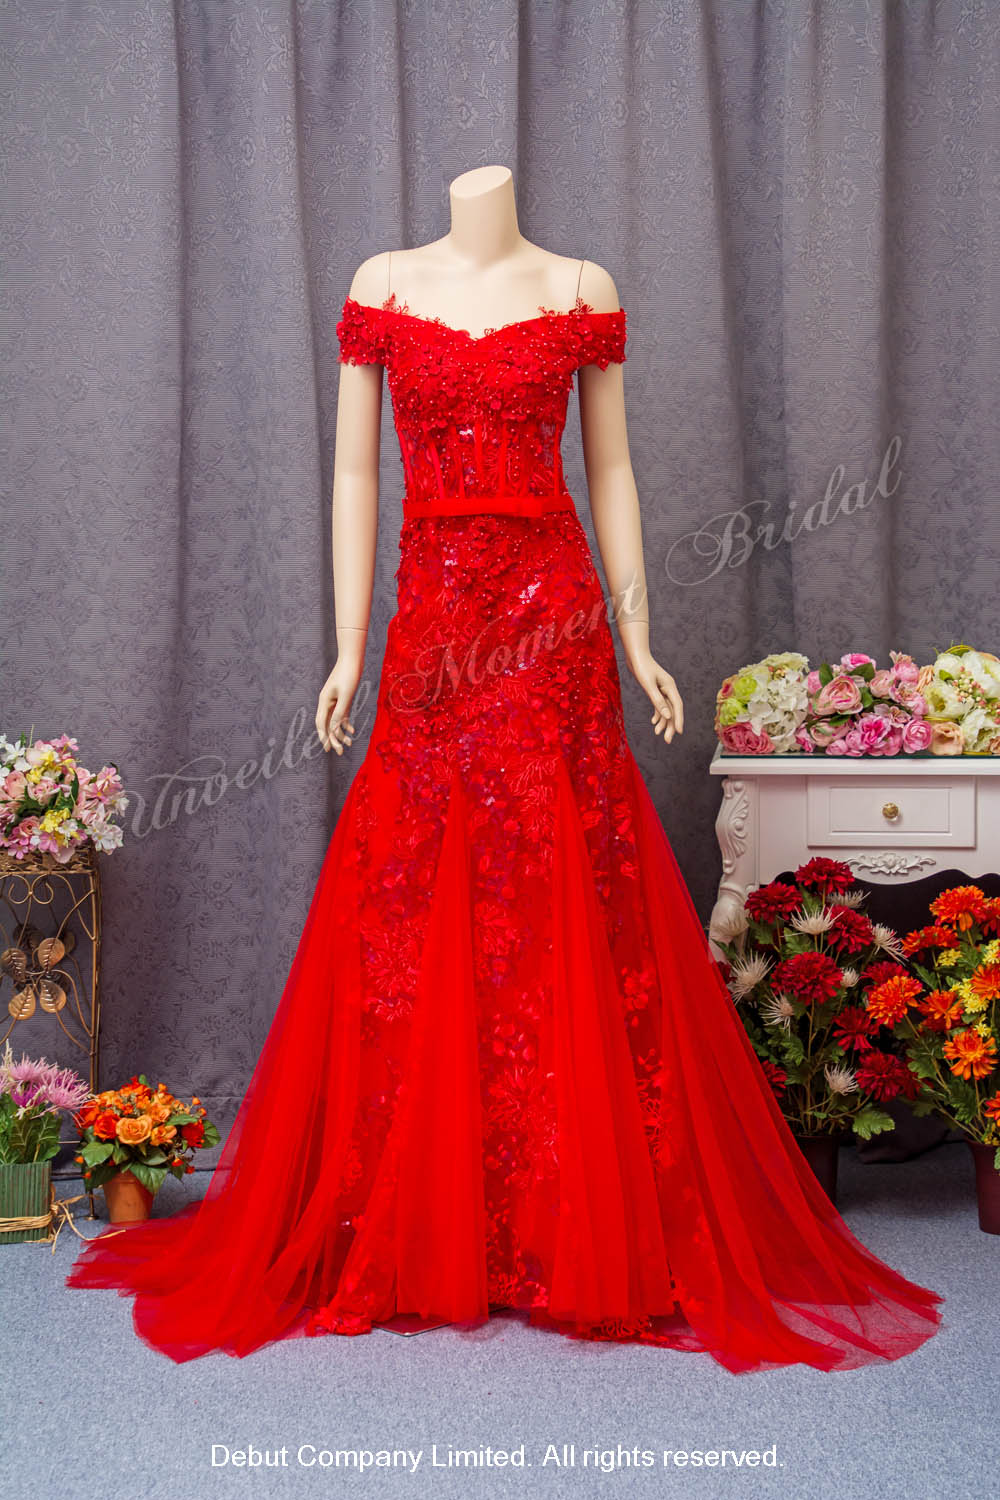 Off-the-shoulder, beaded lace appliques, sweep train, mermaid evening dress. Colour: Red 一字膊, 蕾絲釘珠, 小拖尾, 魚尾款紅色晩裝